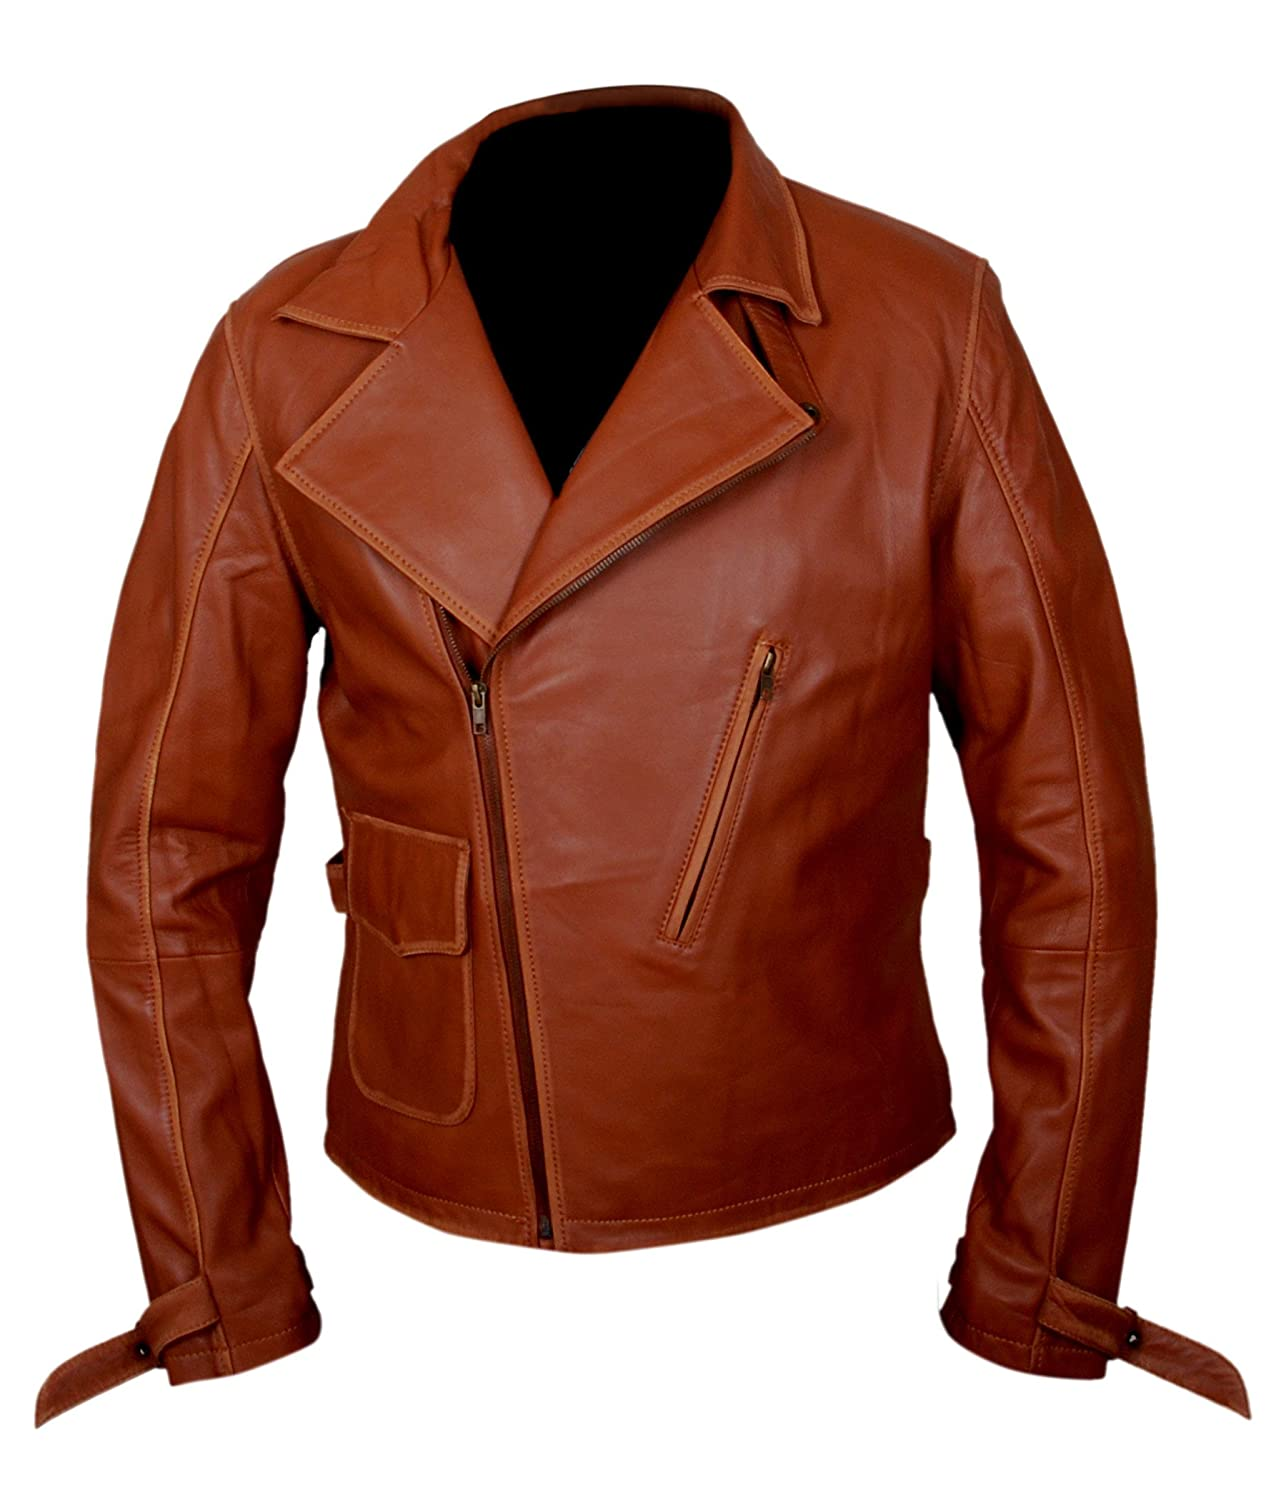 Captain America First Avenger Brown Faux Leather Jacket - DeluxeAdultCostumes.com